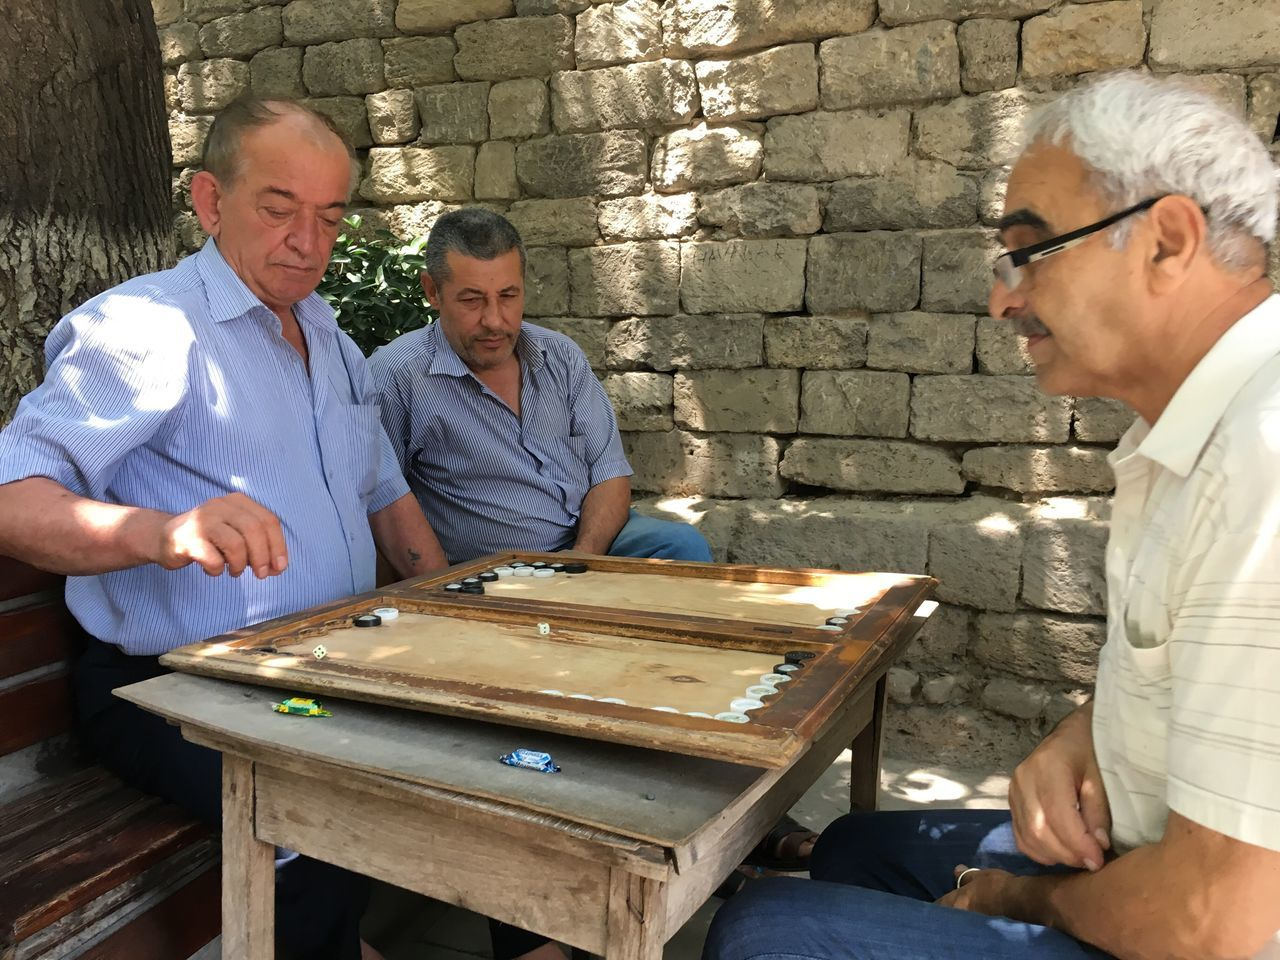 Men play a game of Backgammon in Baku's Old City in Azerbaijan Daily Life Traveling Azerbaijan Baku Life